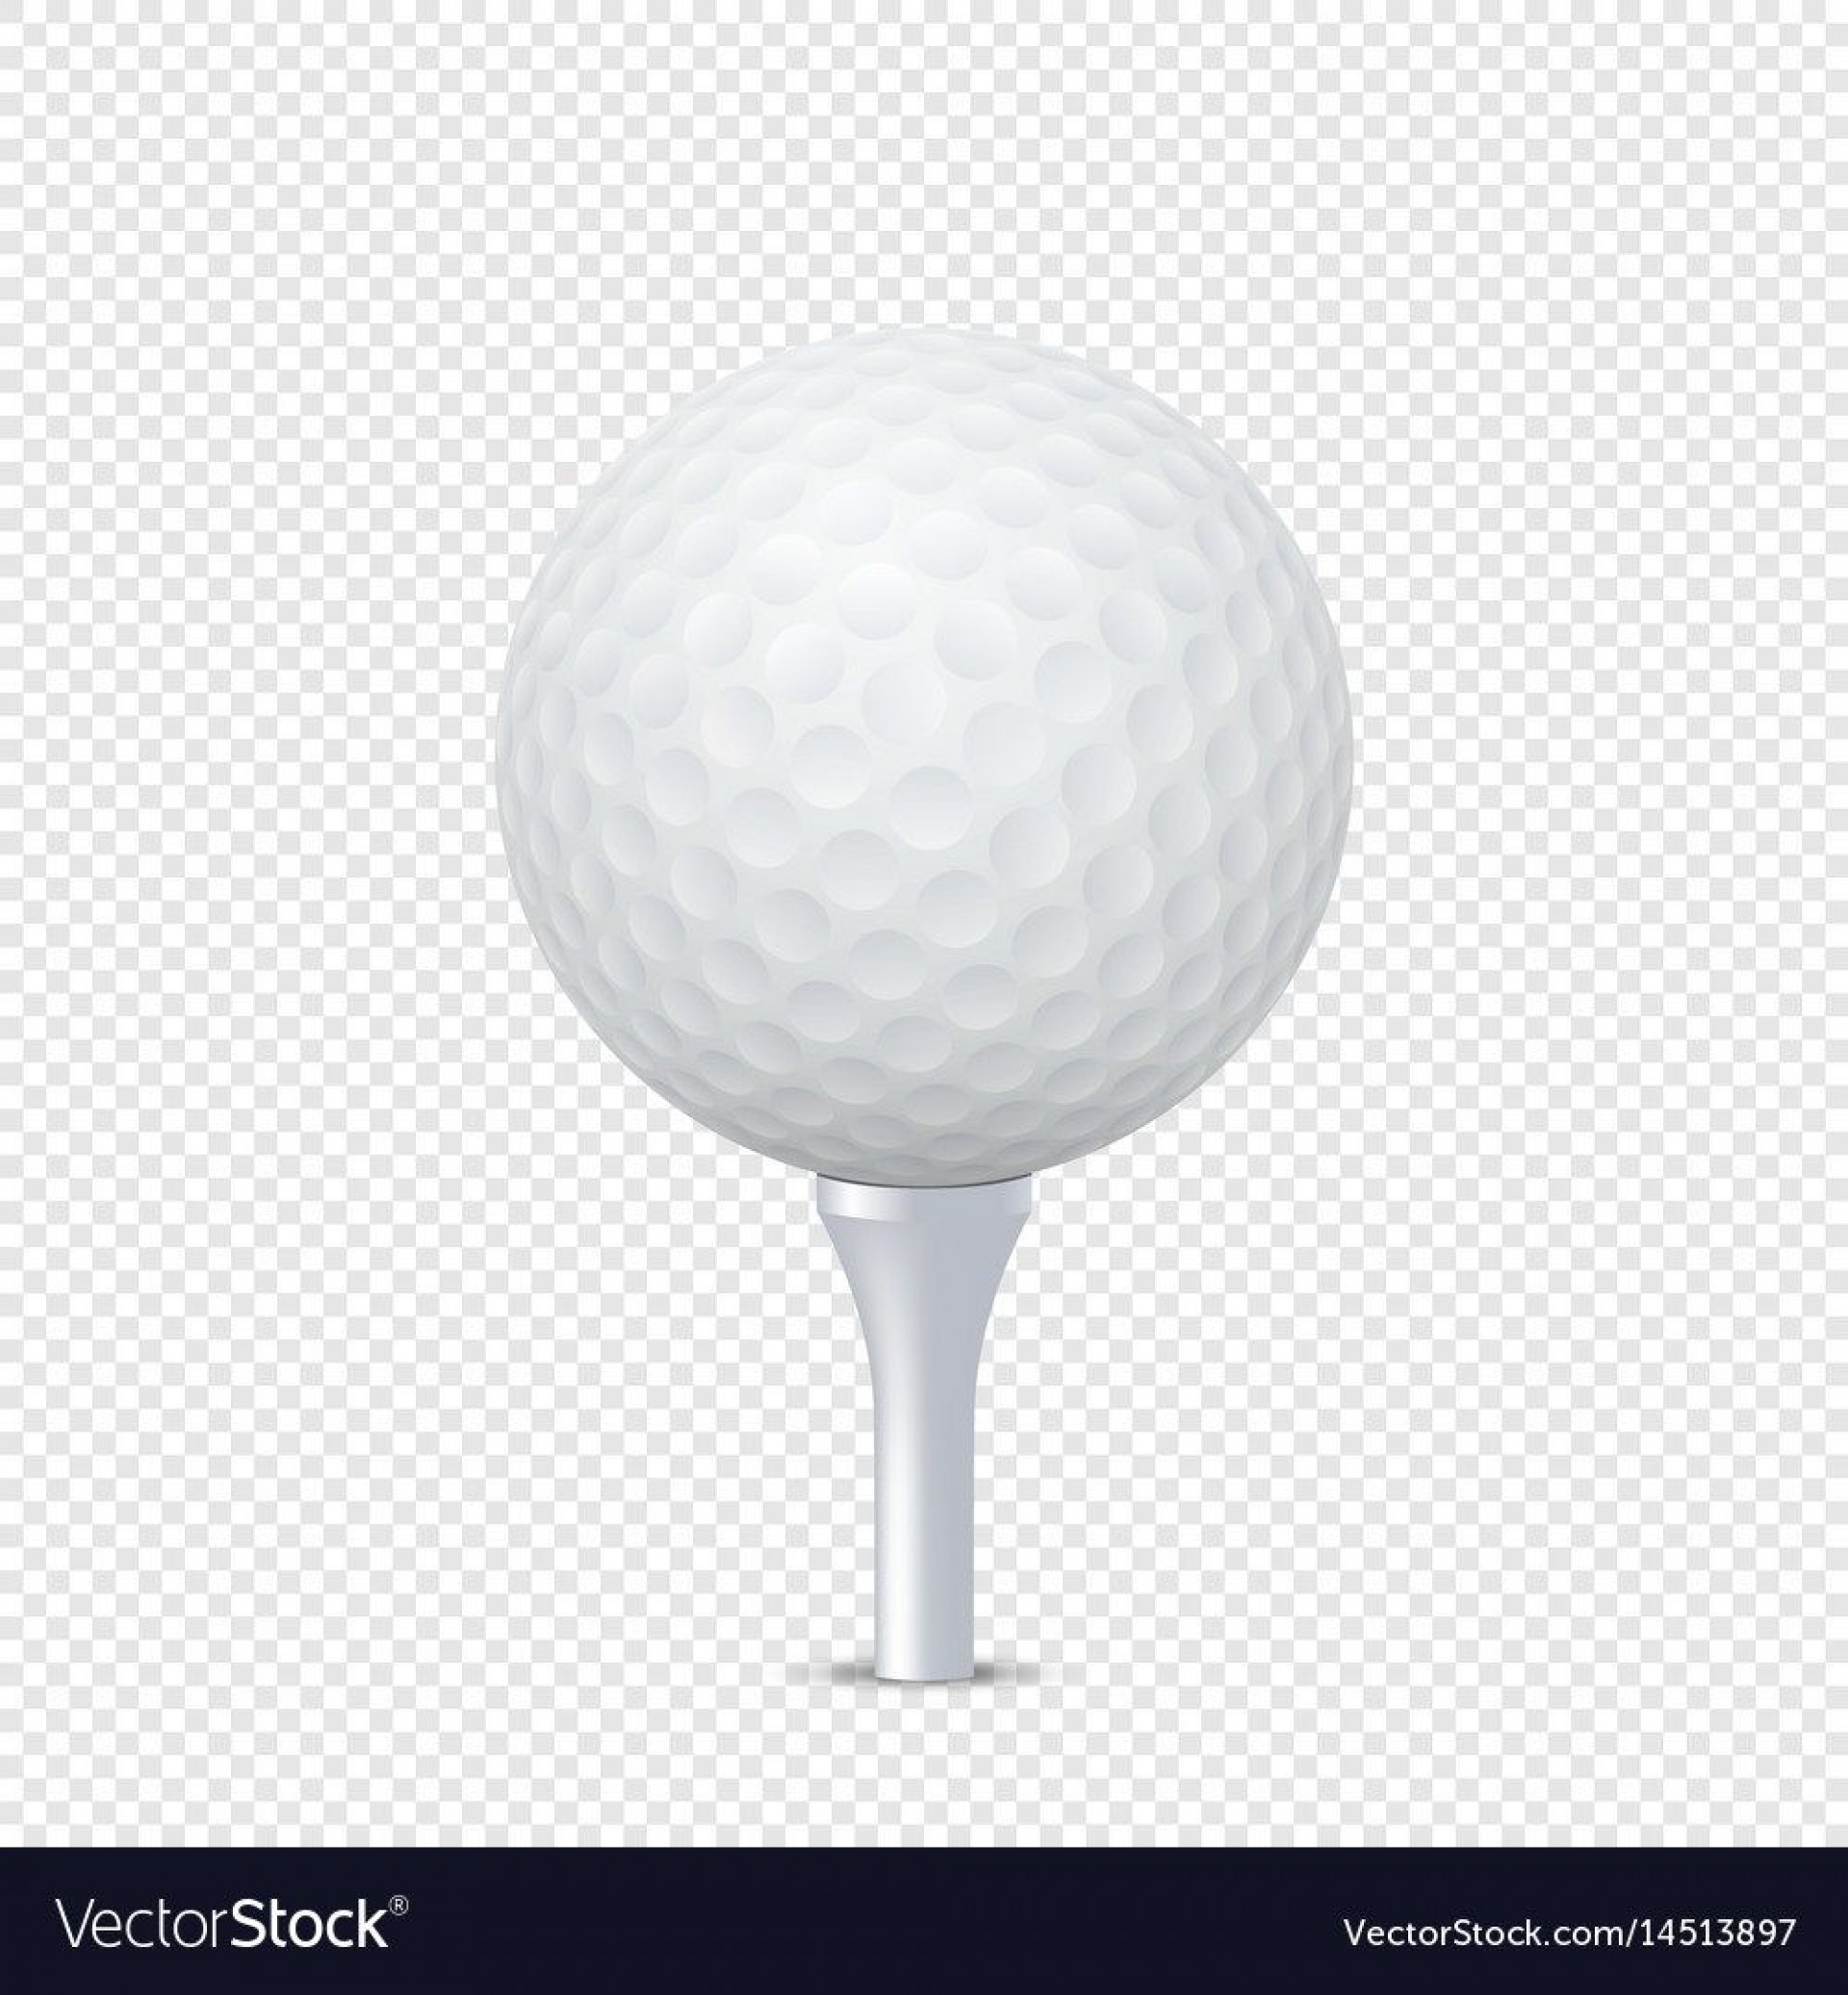 009 Surprising Golf Tee Game Template Inspiration  Triangle1920